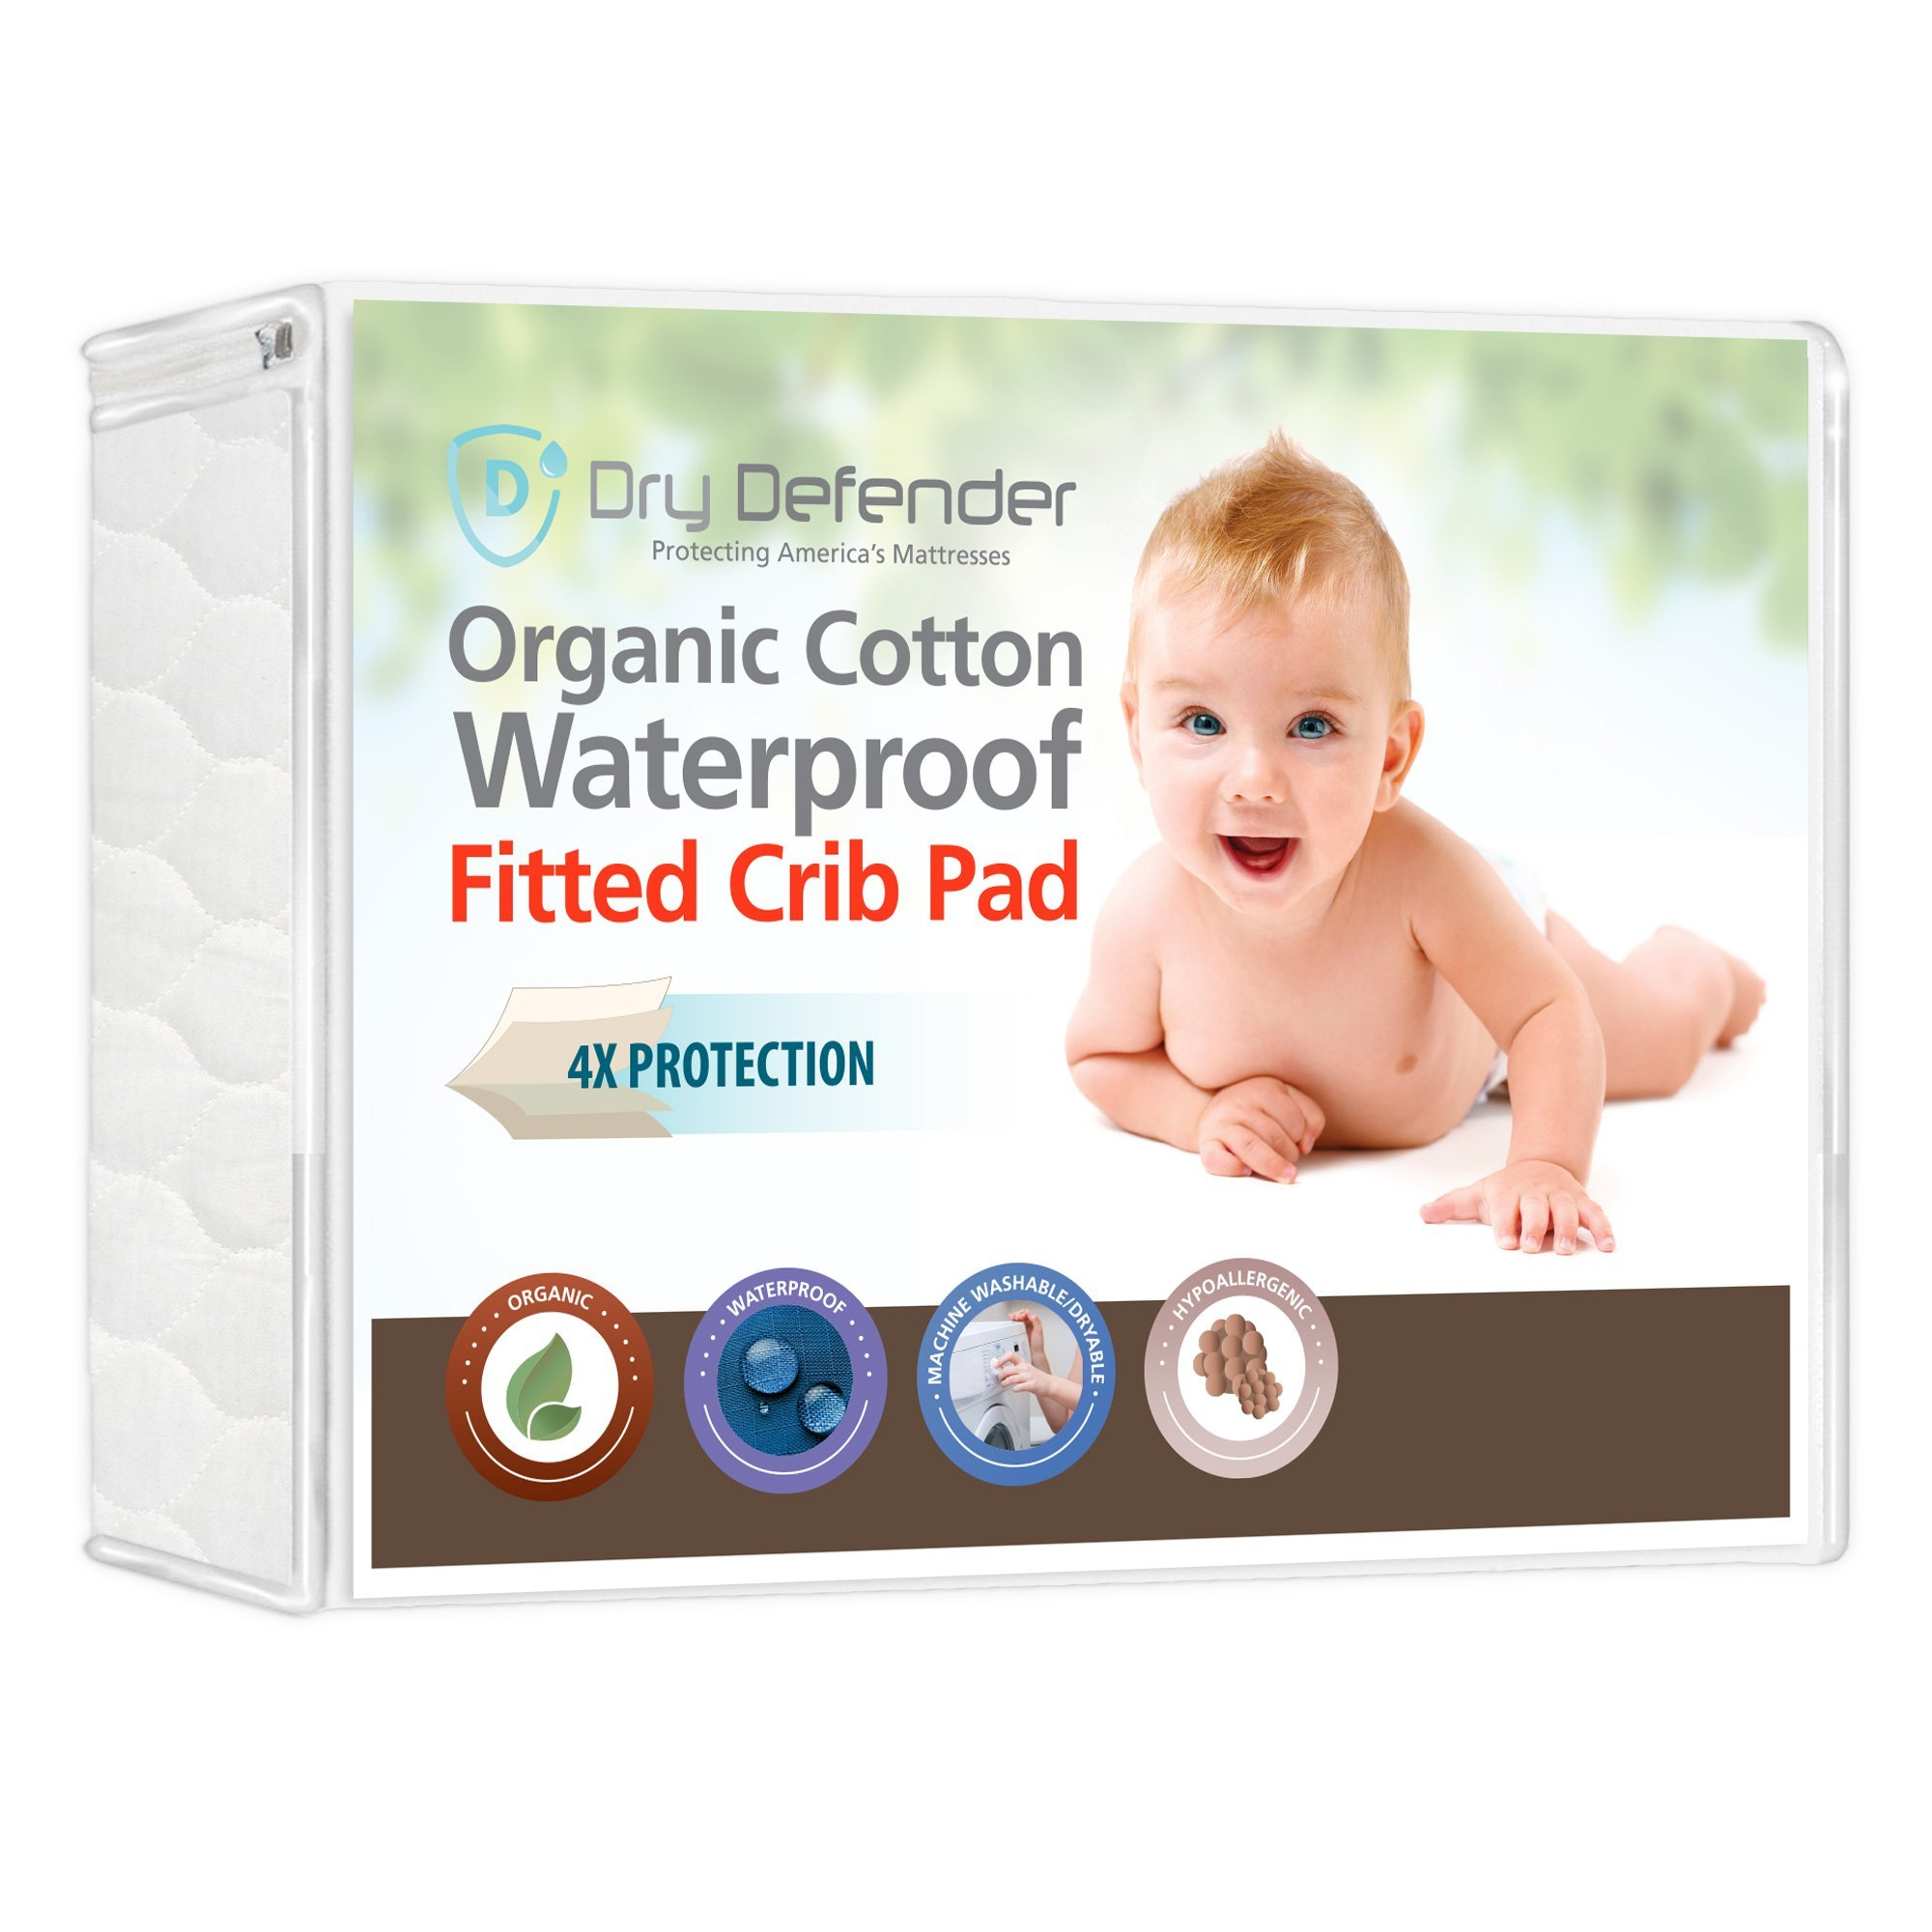 Organic Cotton Waterproof Fitted Crib Pad - Natural Baby Crib Mattress Cover & Protector - Unbleached, Non-Toxic & Hypoallergenic (28'' x 52'' x 7'') by Dry Defender